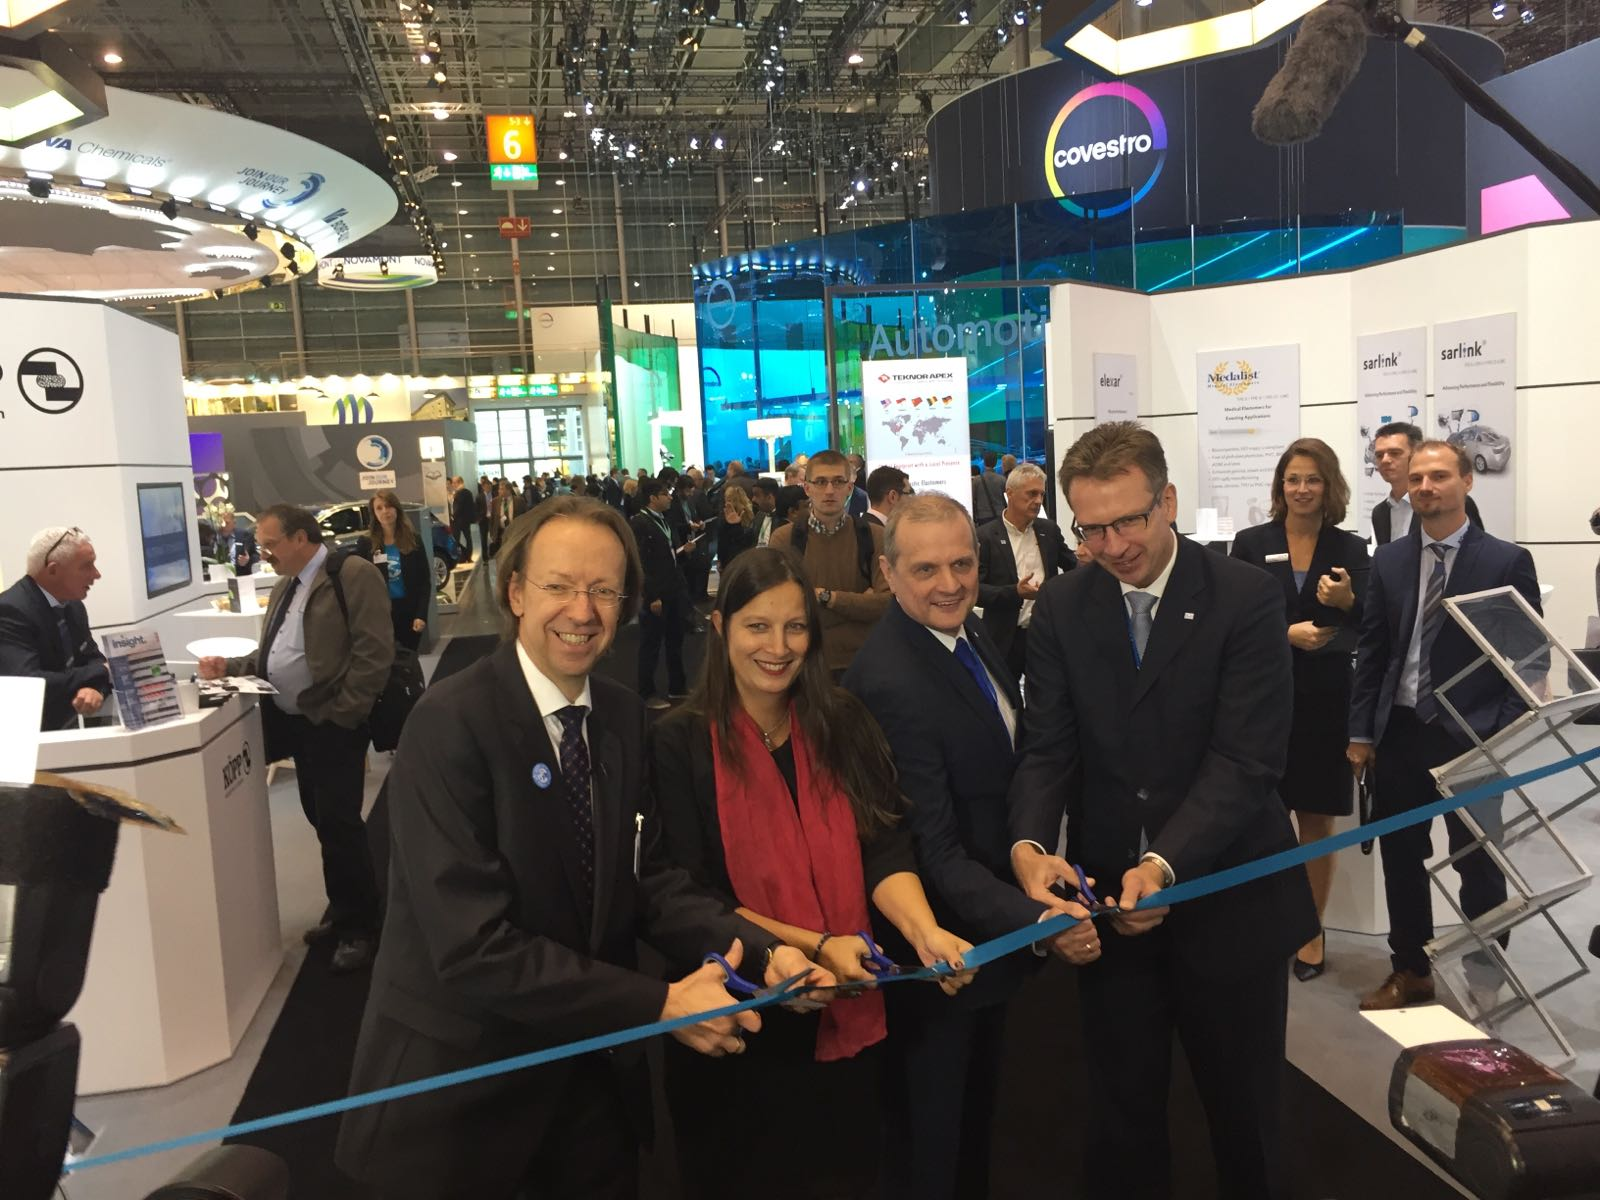 One of the rubber hot spots at K 2016 will once again be the Rubber Street. During the official opening (f. l. t. r.): Boris Engelhardt (wdk), Indira Gupta (Dr. Gupta Verlag), Jürgen Gunther and Stefan Rittmann (Arlanxeo).